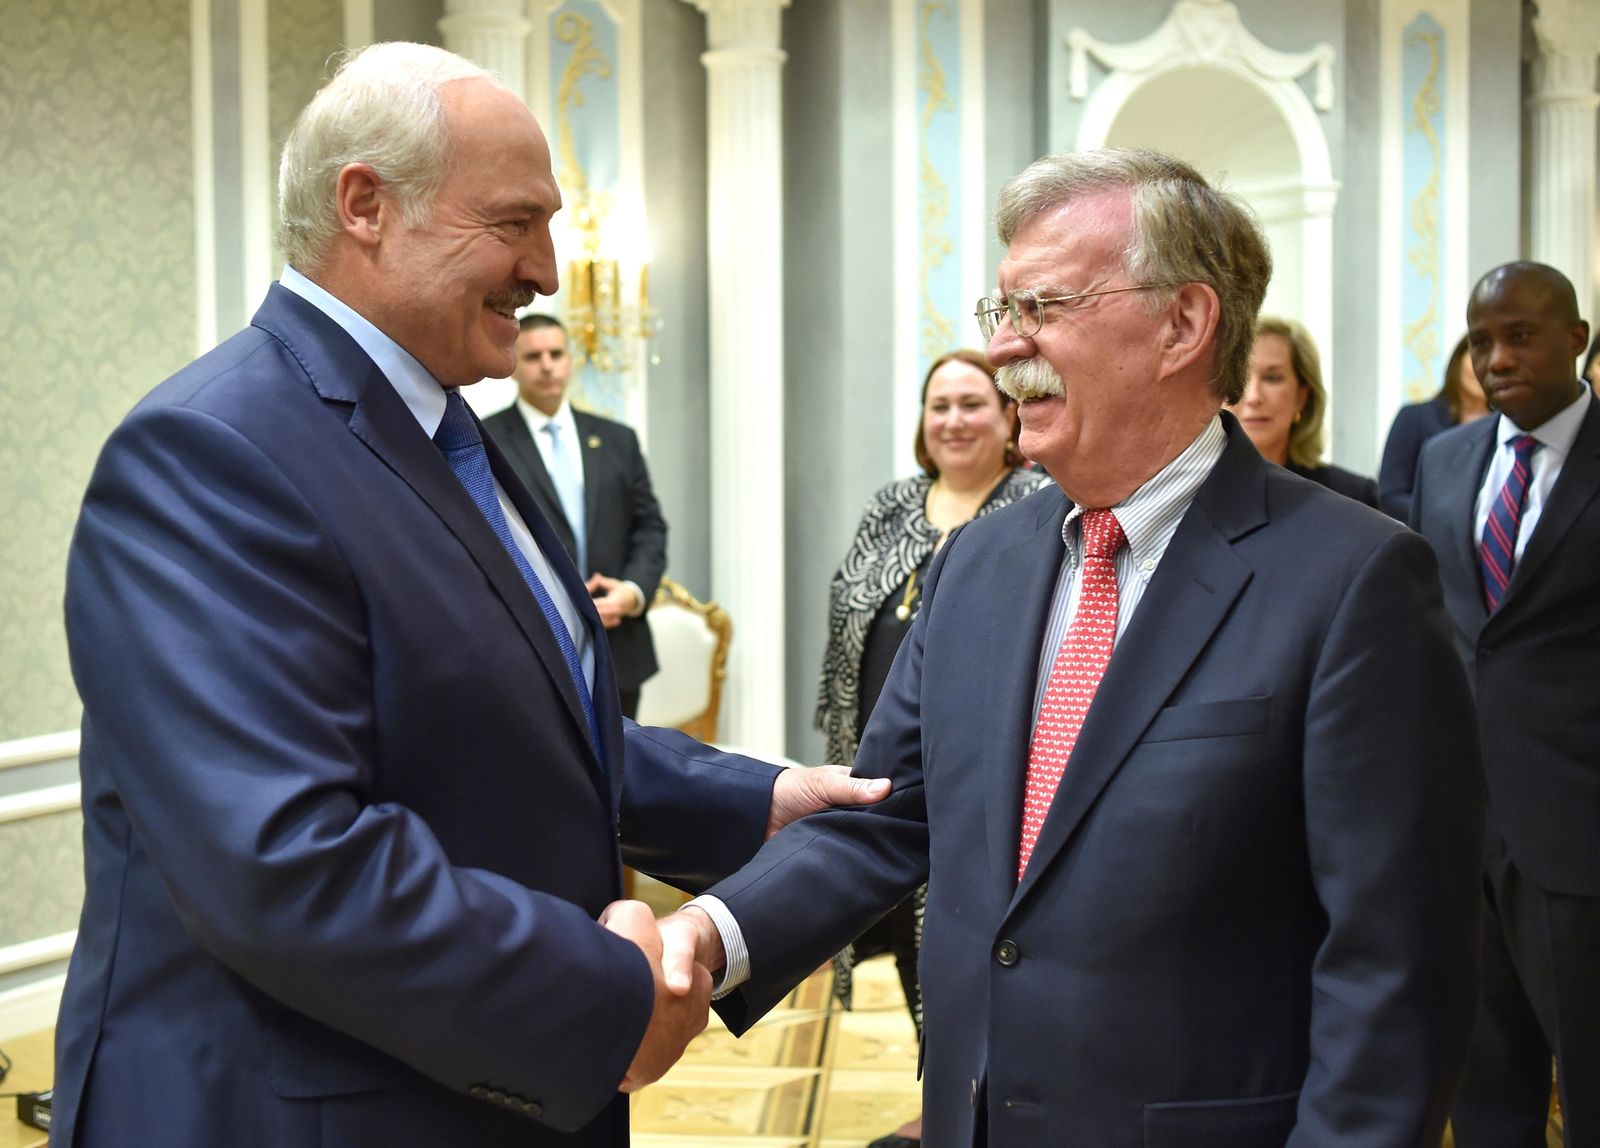 John Bolton, US National Security Advisor, right, is welcomed by Belarusian President Alexander Lukashenko during their meeting in Minsk, Belarus, Thursday, Aug. 29, 2019. (Sergey Gapon/Pool Photo via AP)